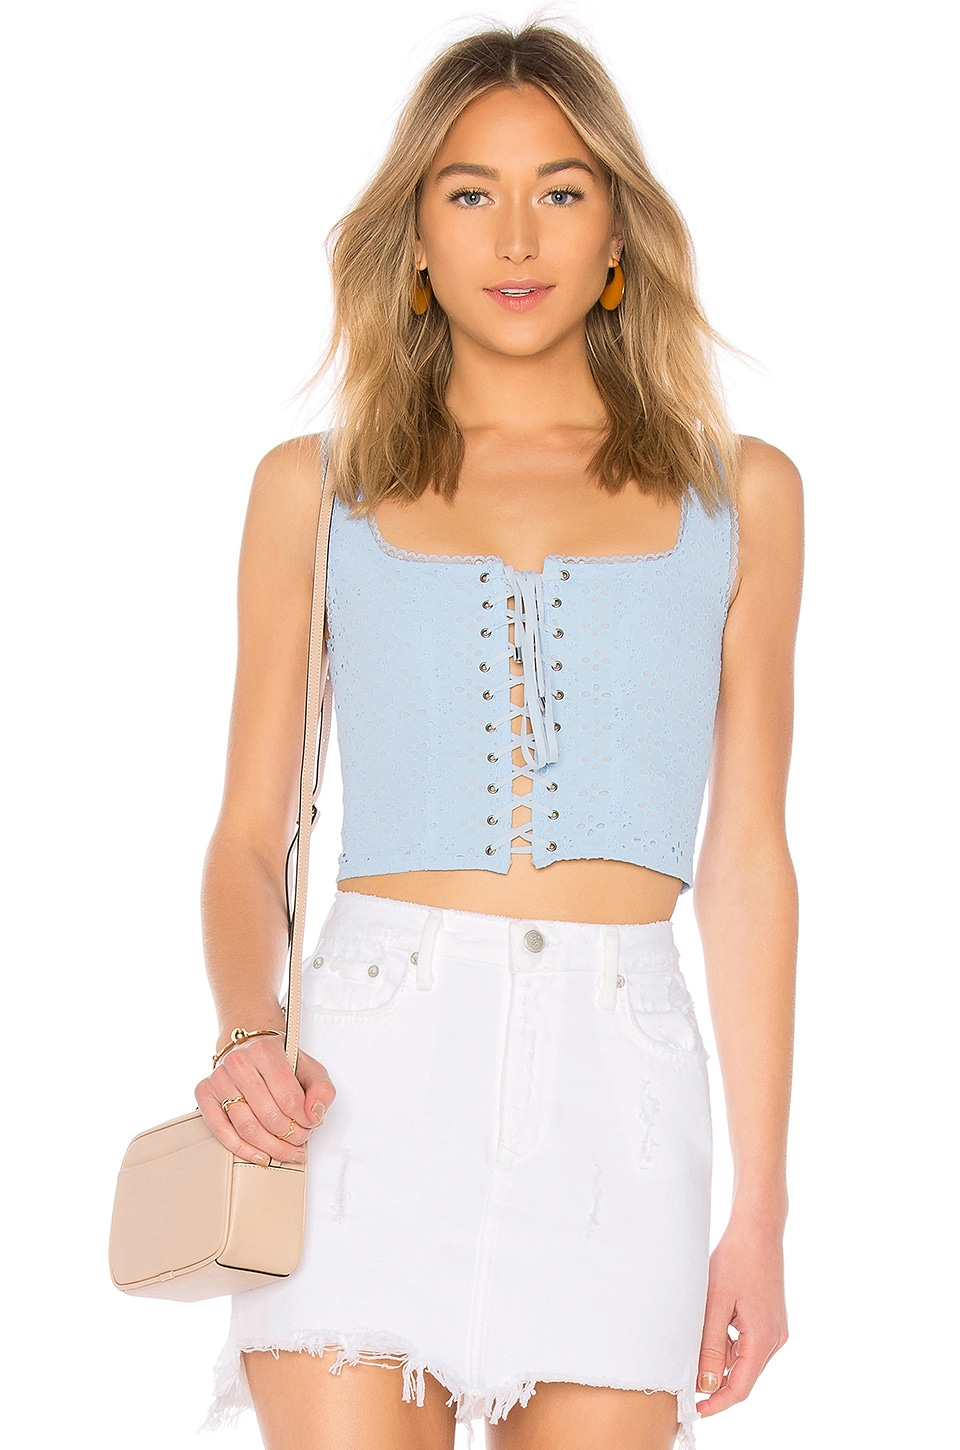 MAJORELLE Kent Top in Bluebird